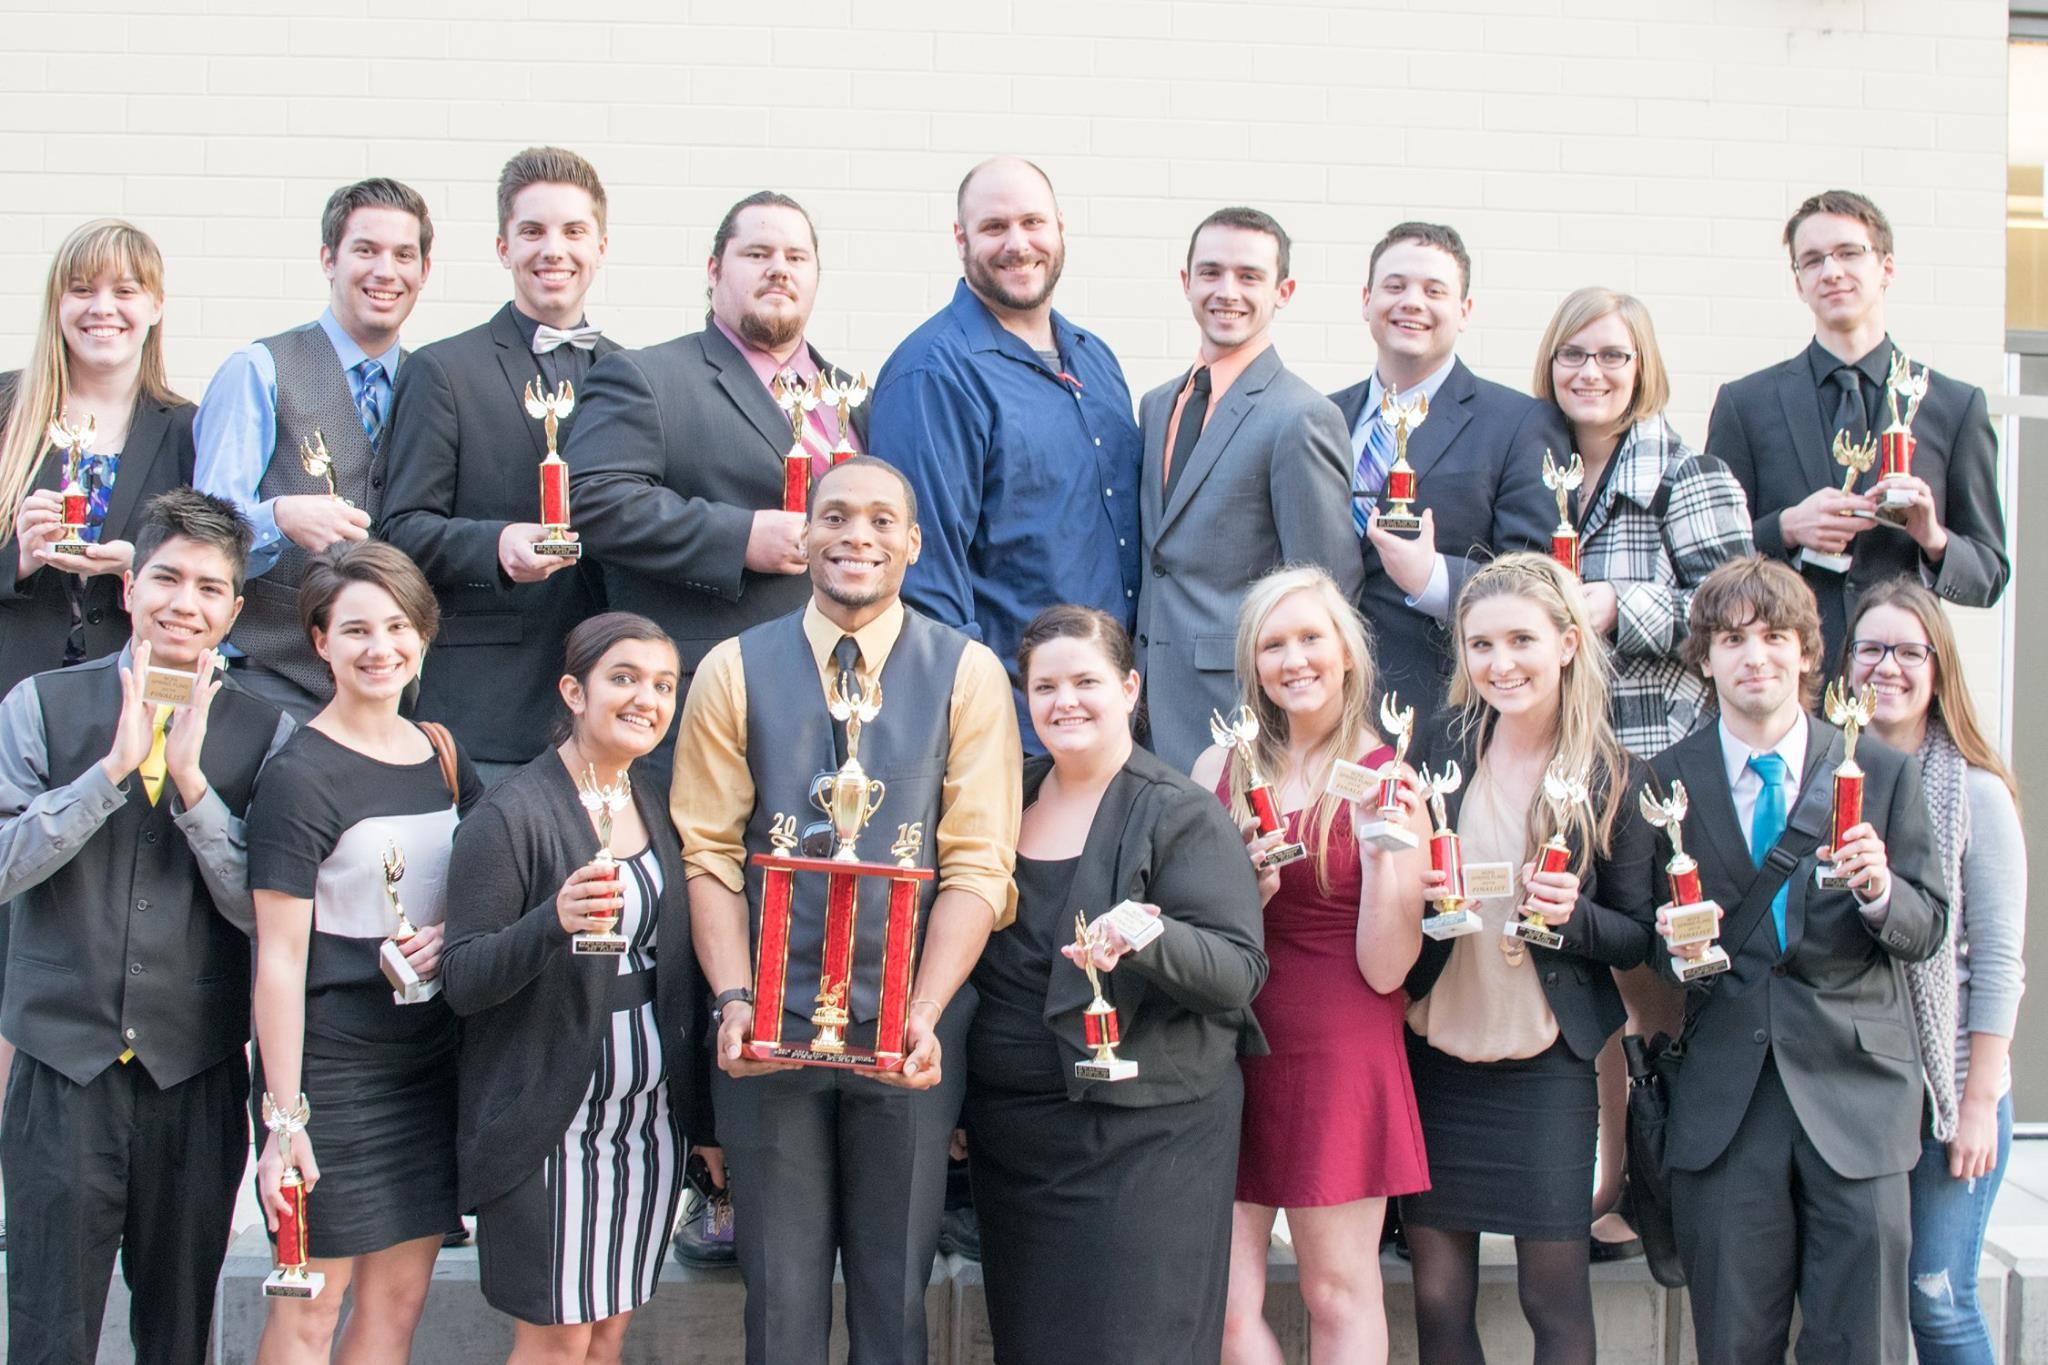 MJC Forensics Team Outside Founder Hall with Awards